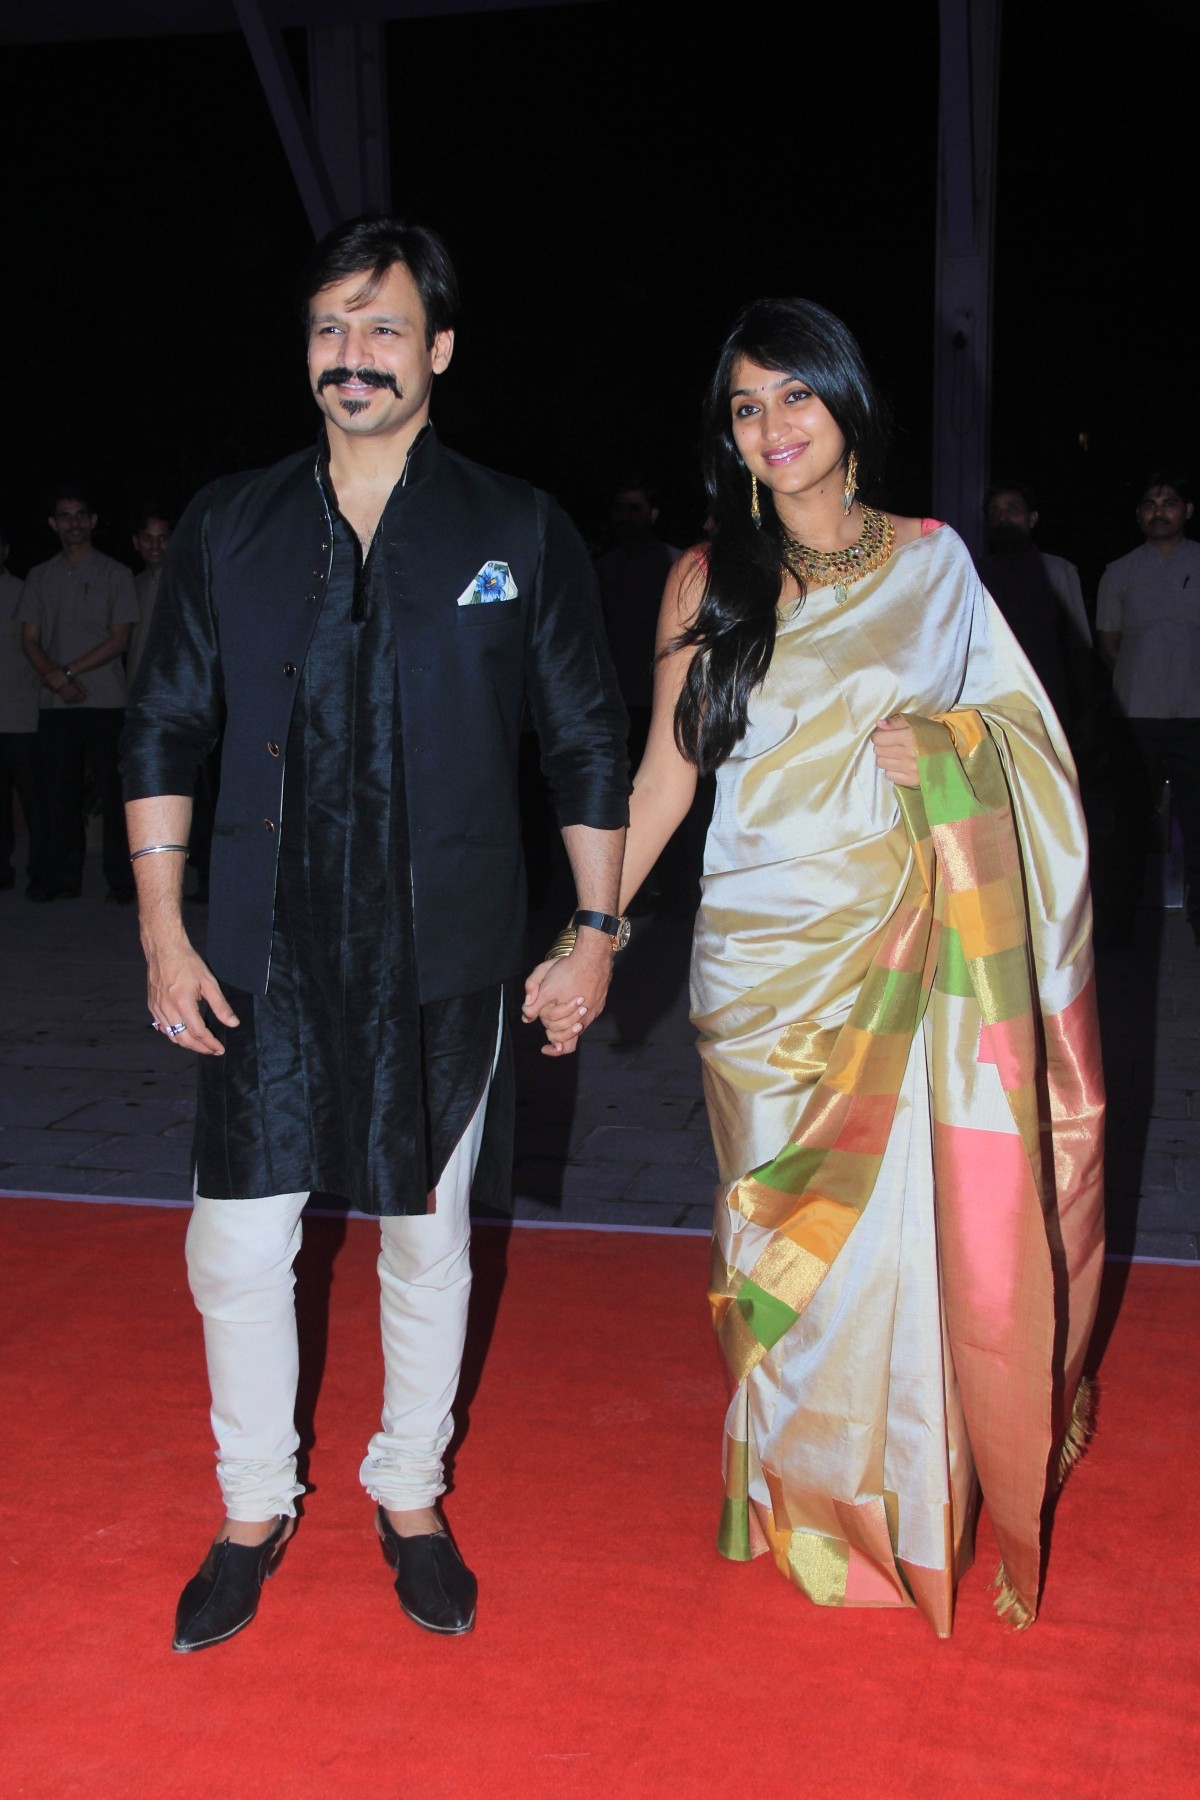 Vivek Oberoi and Priyanka Alva arrive for Kussh Sinha's reception party